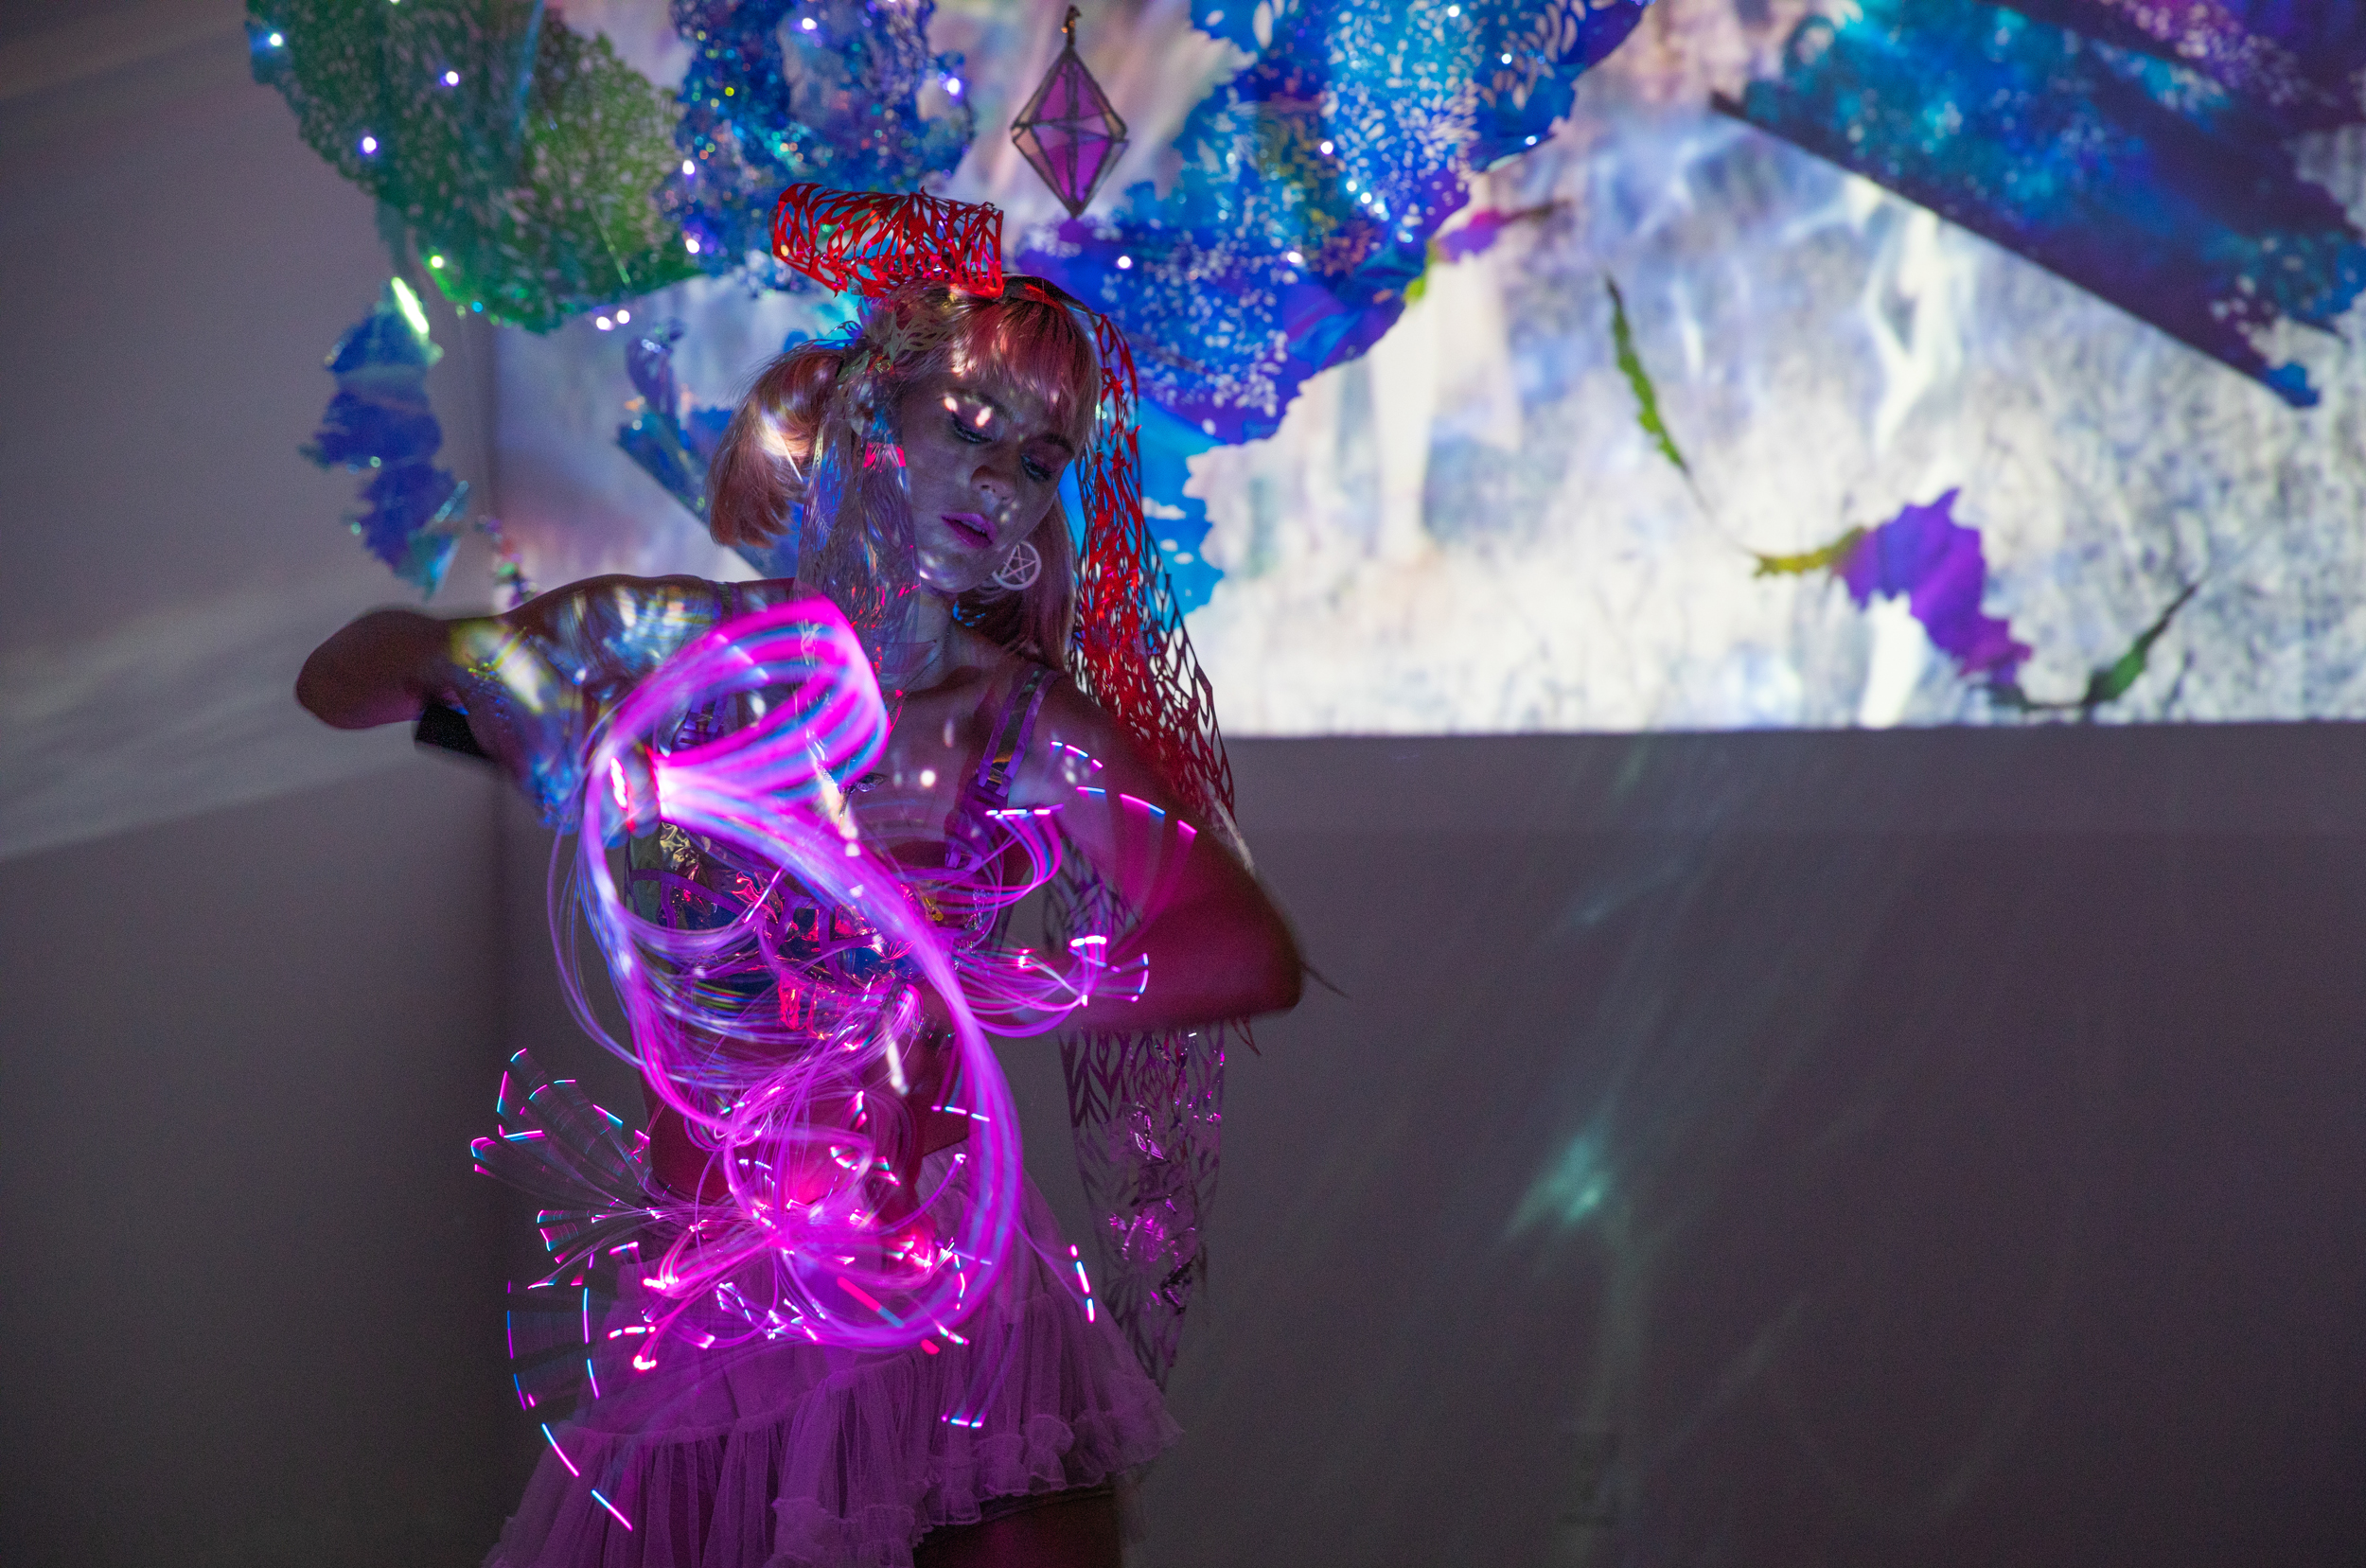 Oracle performace by Julia Sinelnikova at Space Light Holocenter Plaxall Gallery